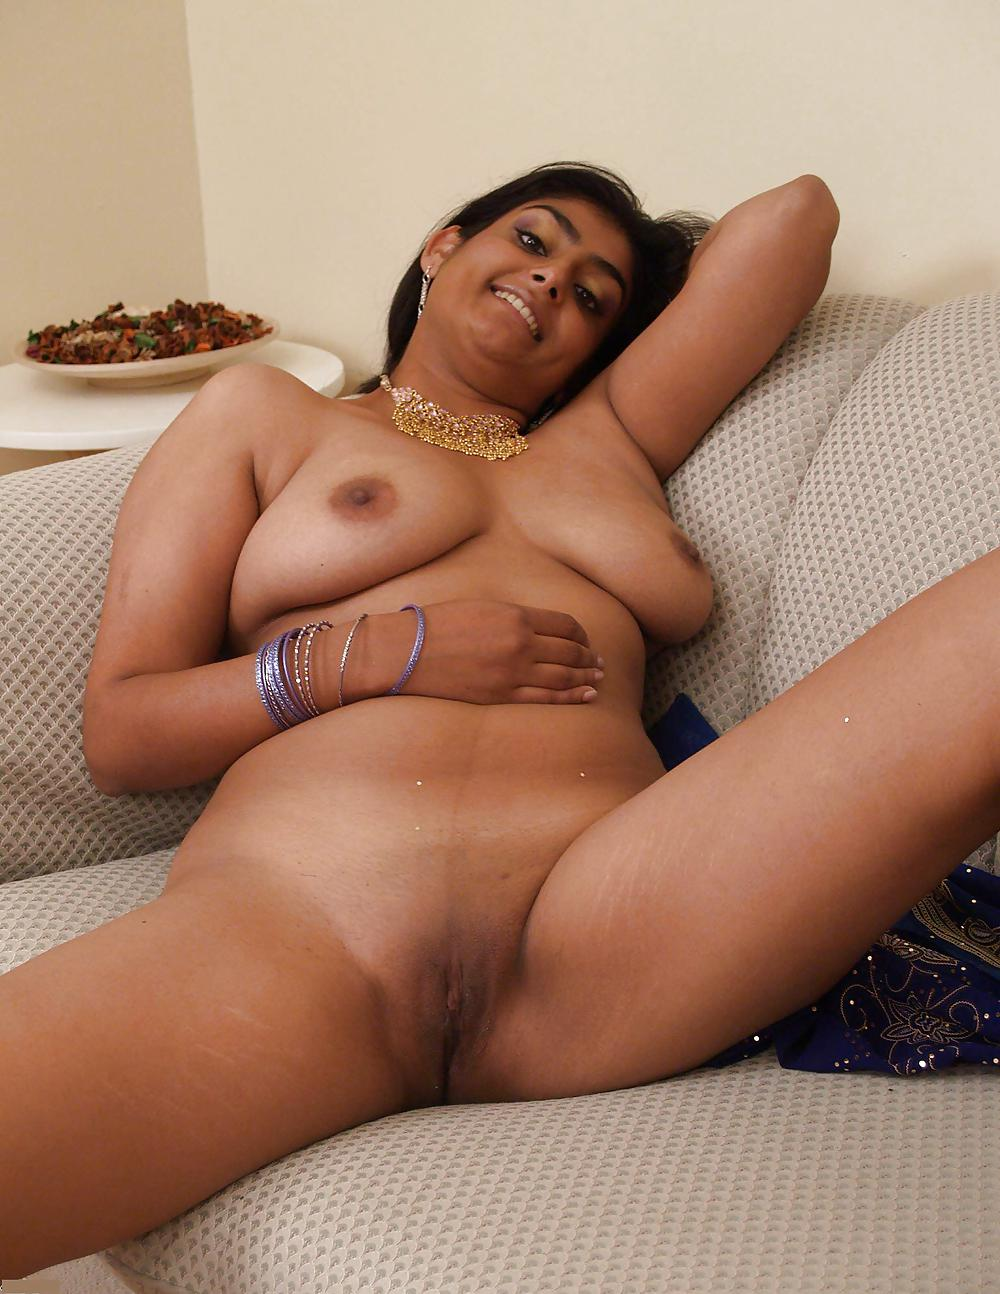 Milking her south indian woman pussy cannabis